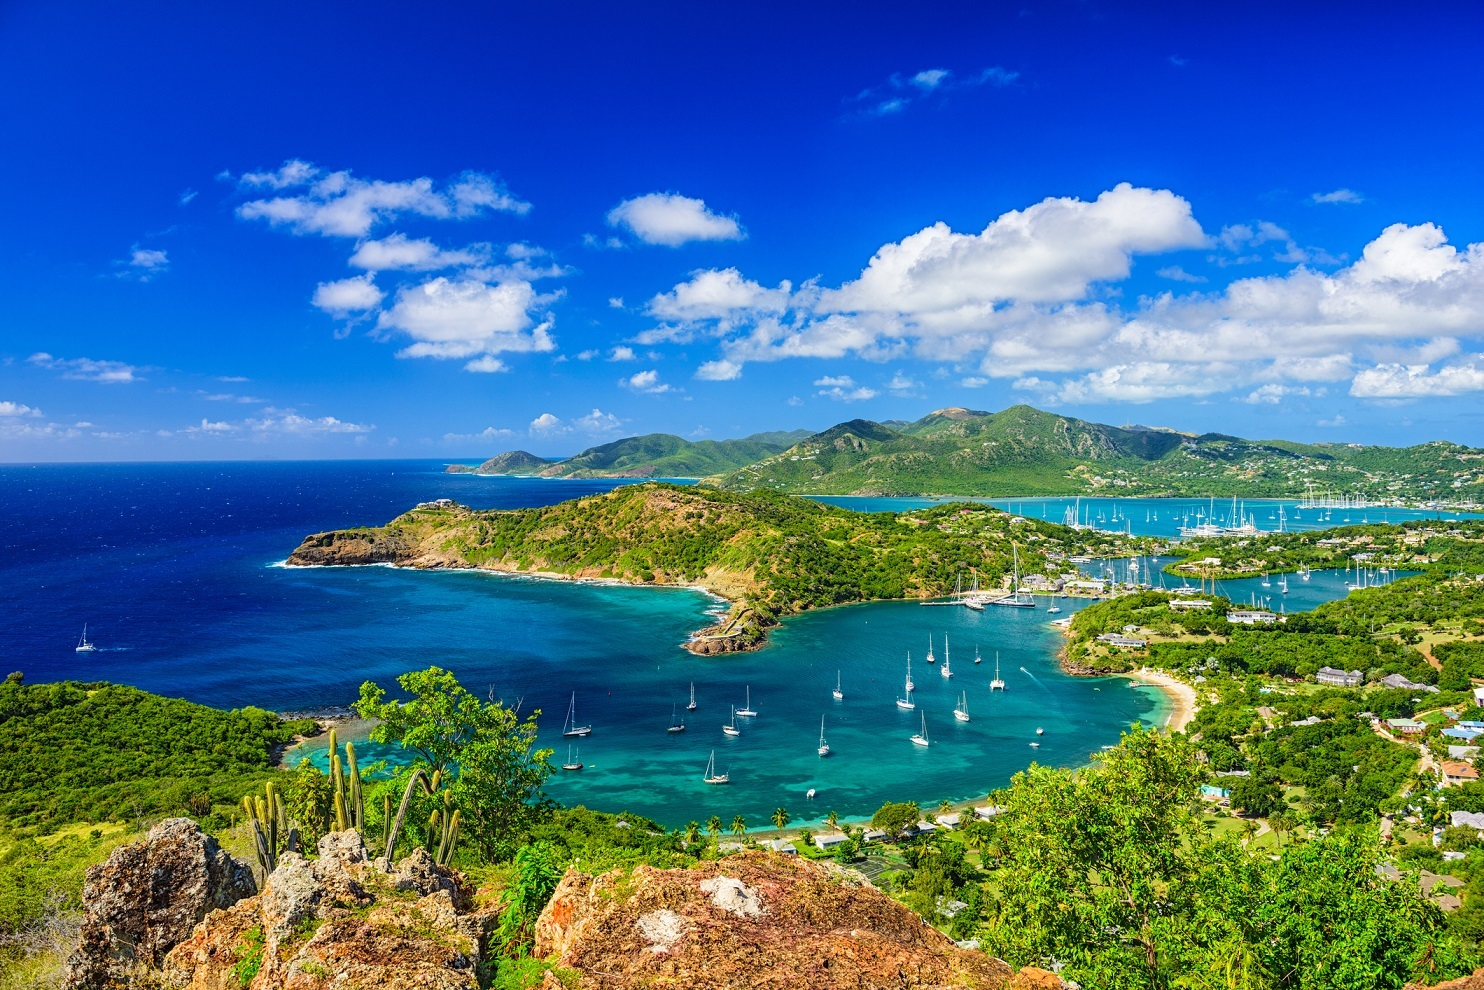 A catamaran on the beach in Antigua